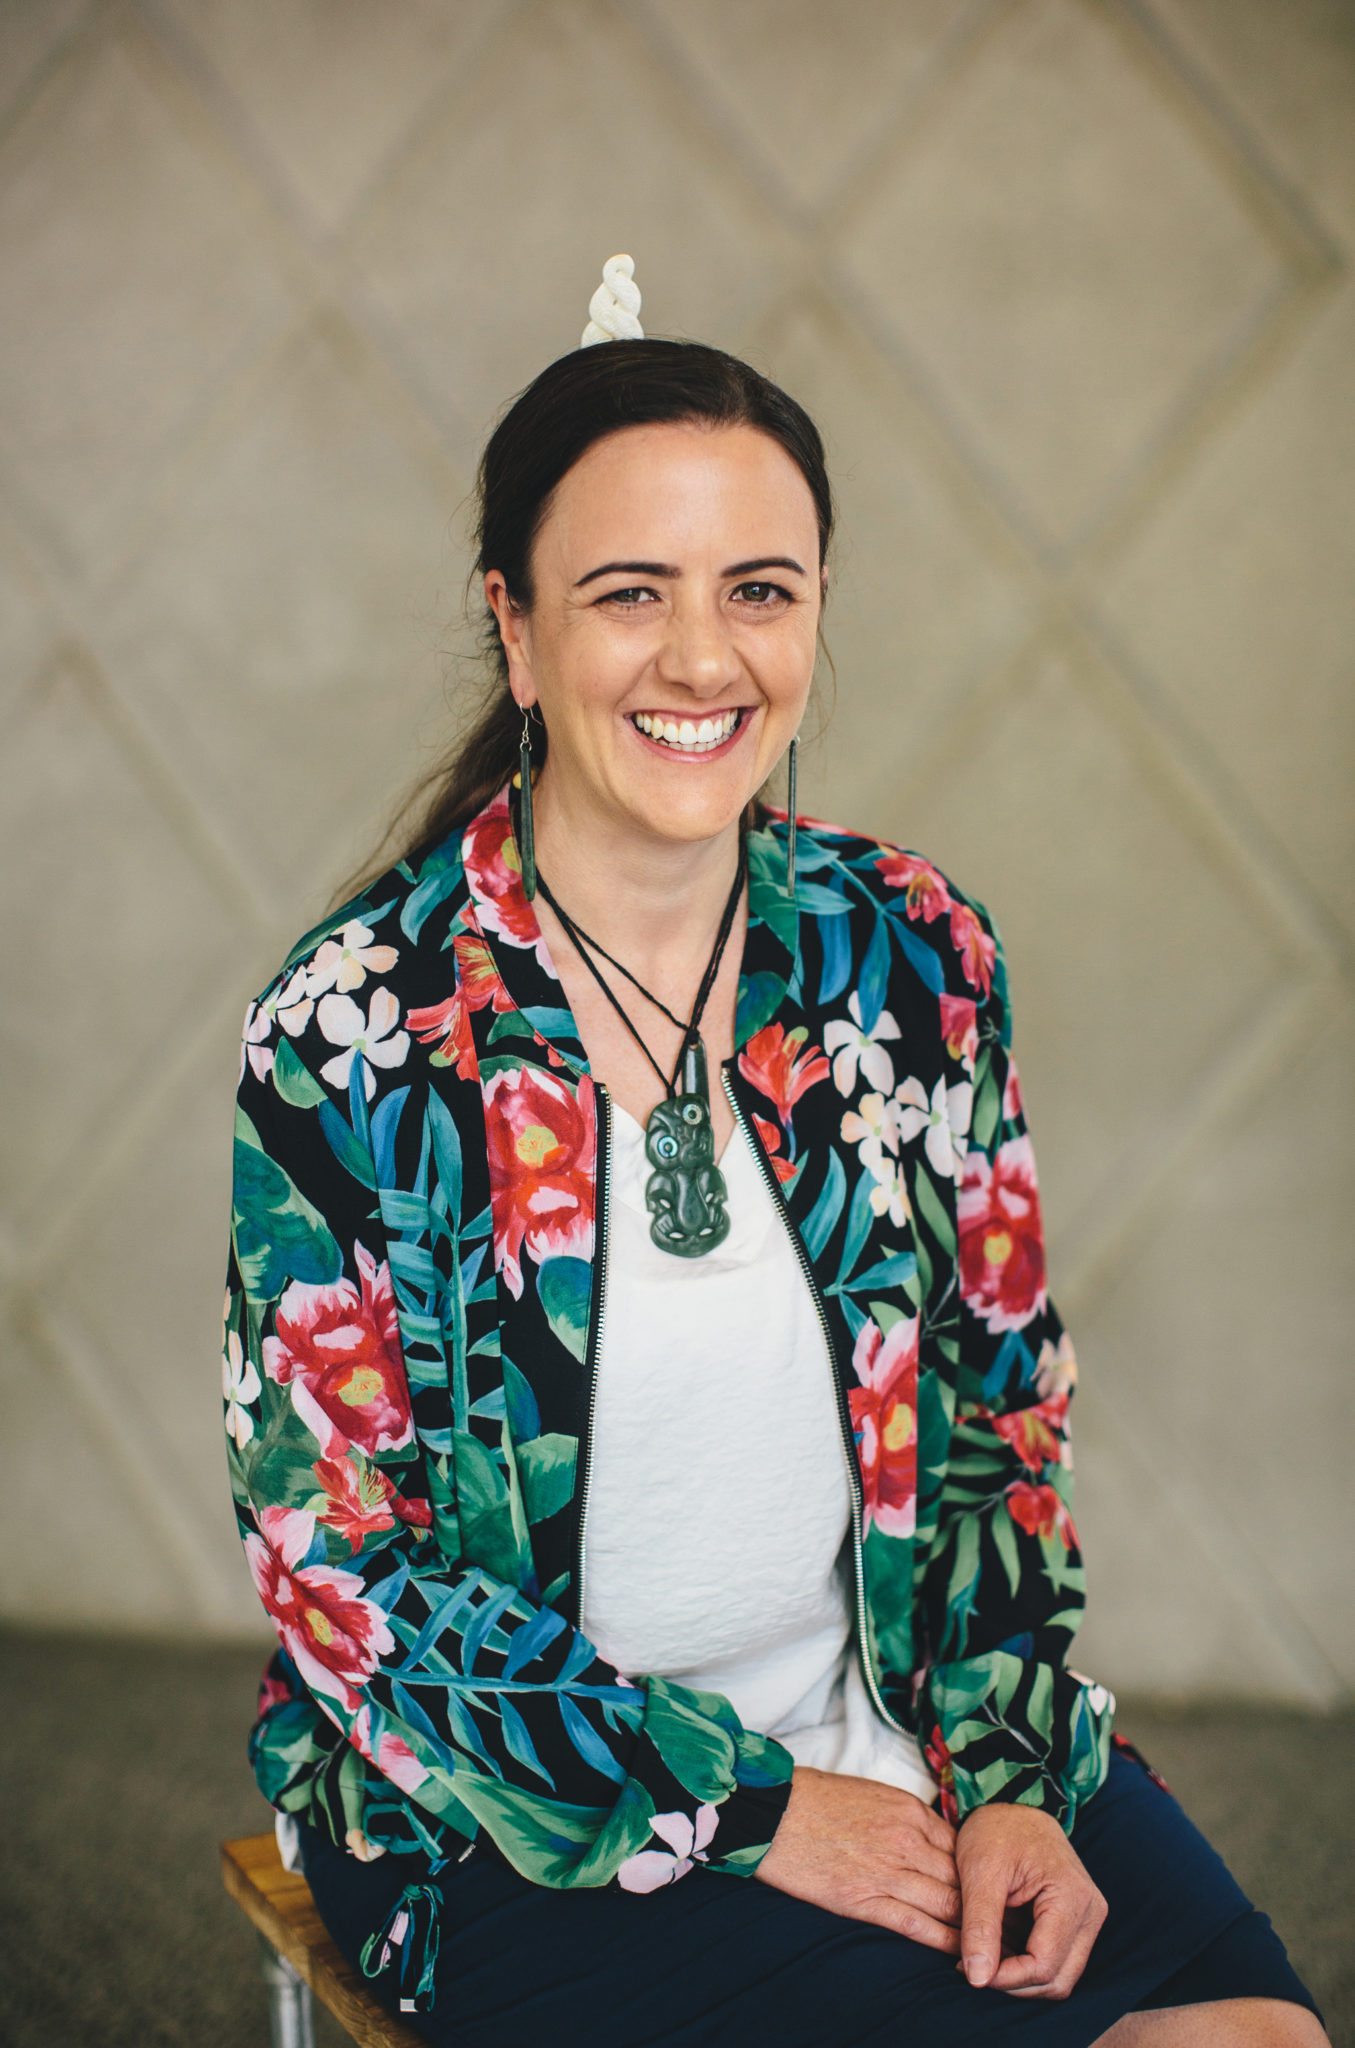 Dr lily fraser, maori doctor, mangere doctor, turuki healthcare, kai tahu, ngai tahu, lchf, low carb, low carb healthy fat, low carb high fat, keto, ketogenic diet, healthy lifestyle, nuku100, nuku, qiane, qiane matata-sipu